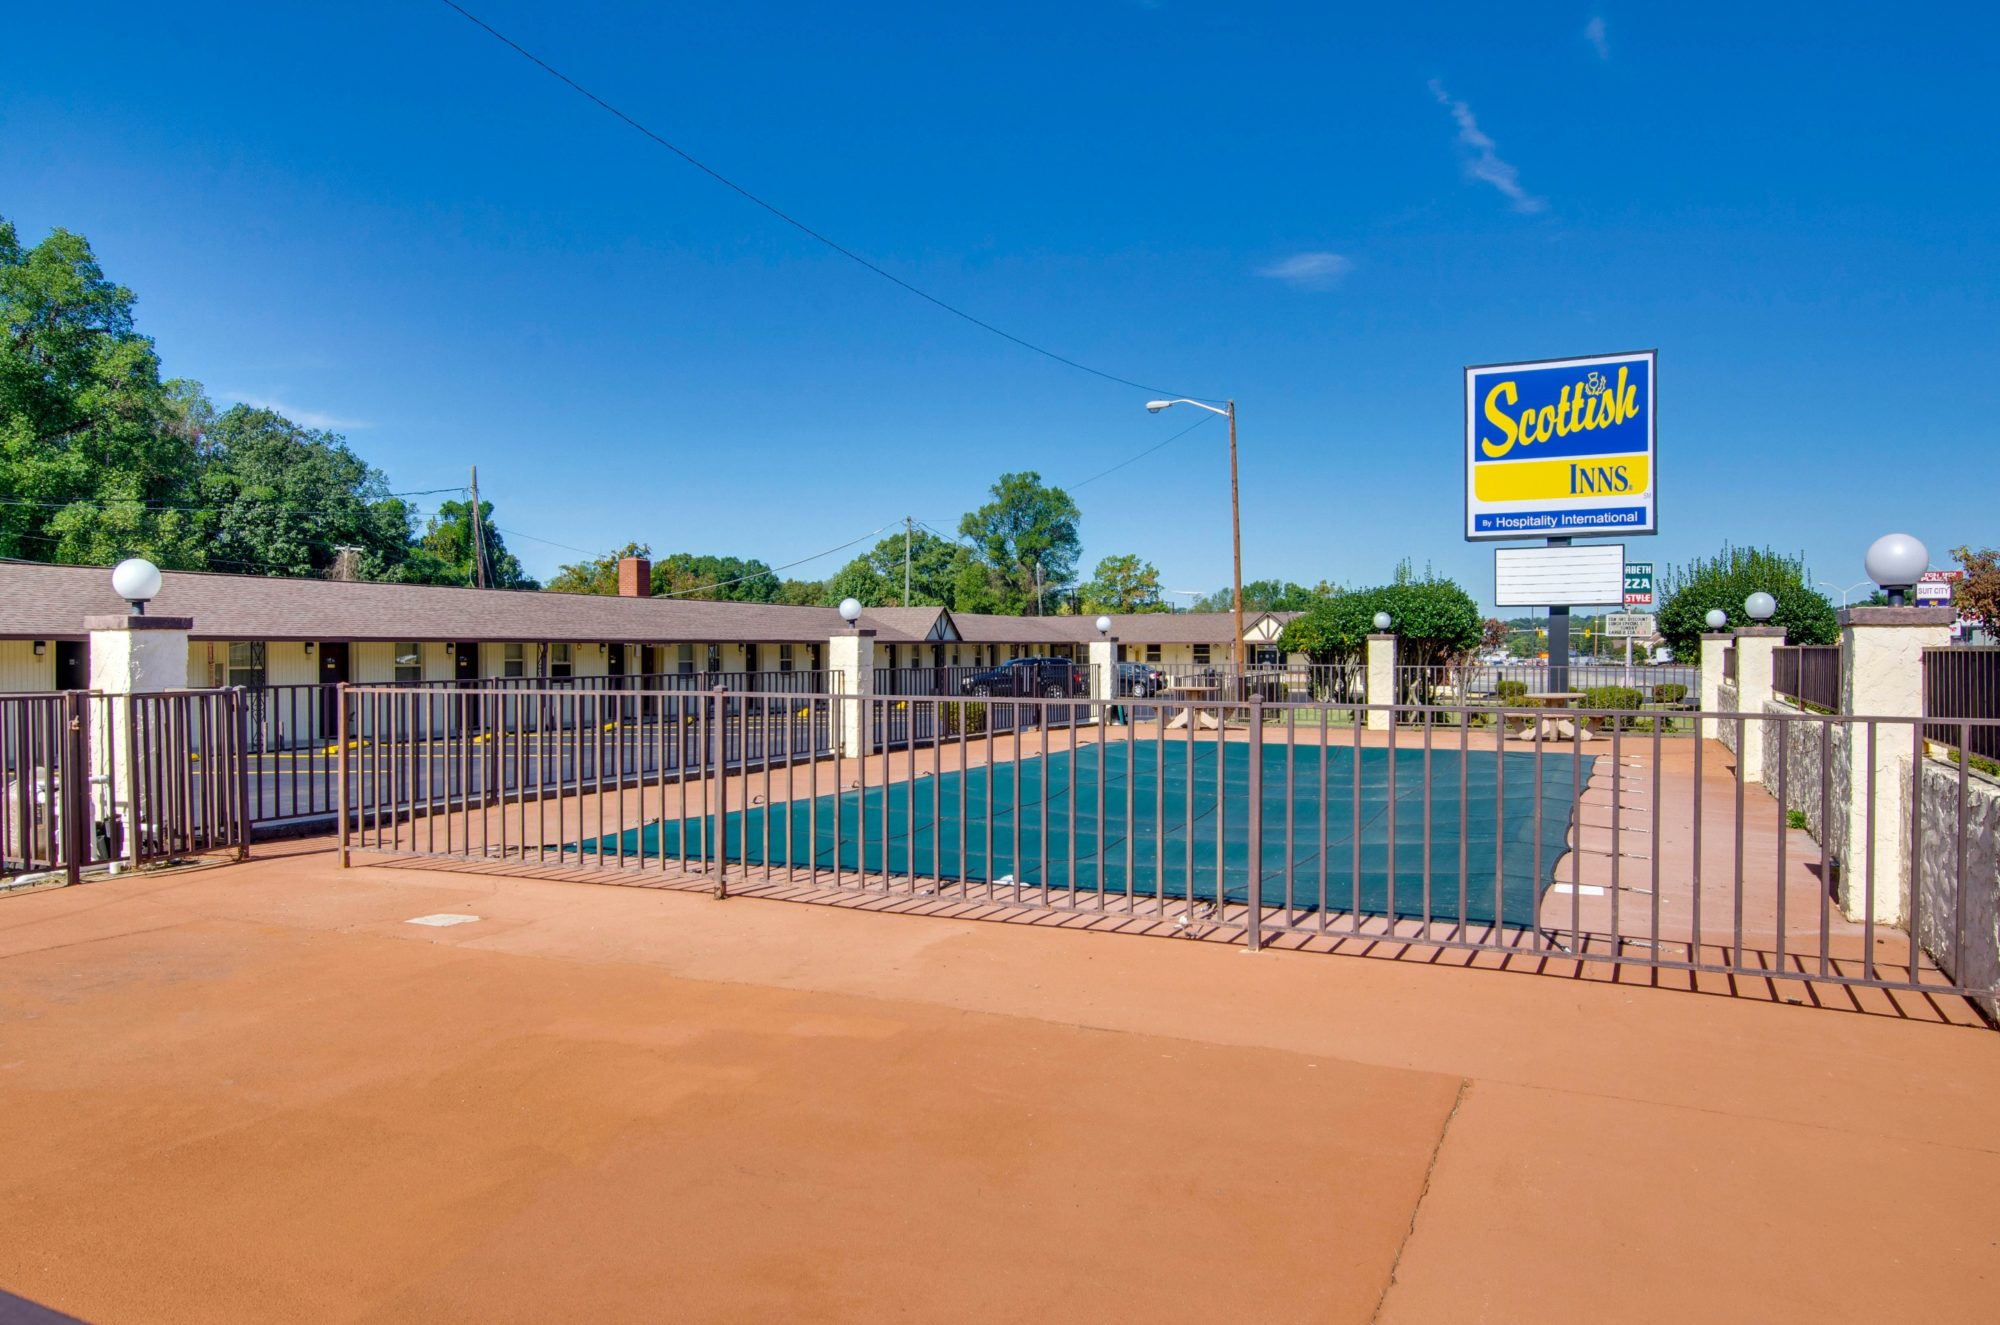 Exterior pool with safety fencing, brand signage, one story hotel building with exterior room entrances and parking spaces